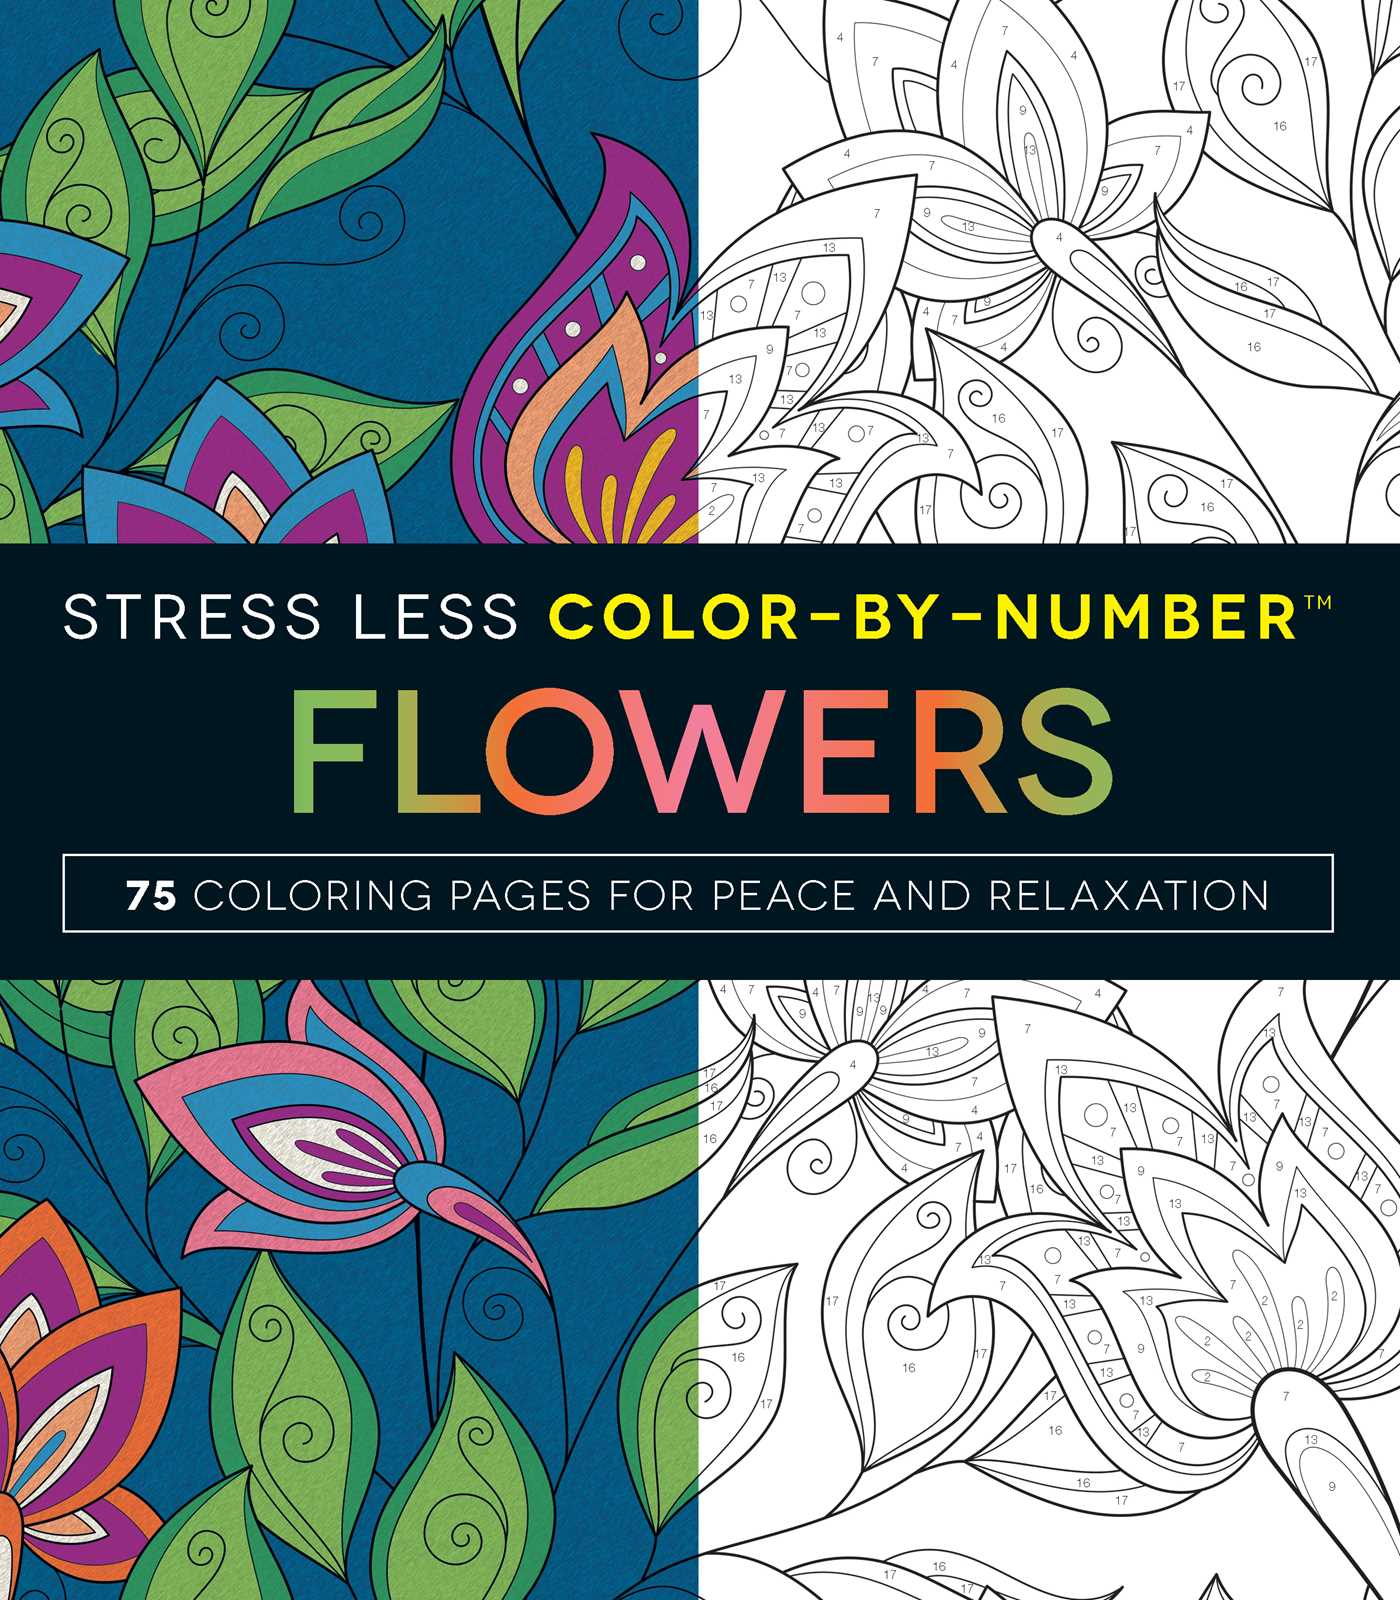 Book Cover Image Jpg Stress Less Color By Number Flowers Trade Paperback 9781507201282